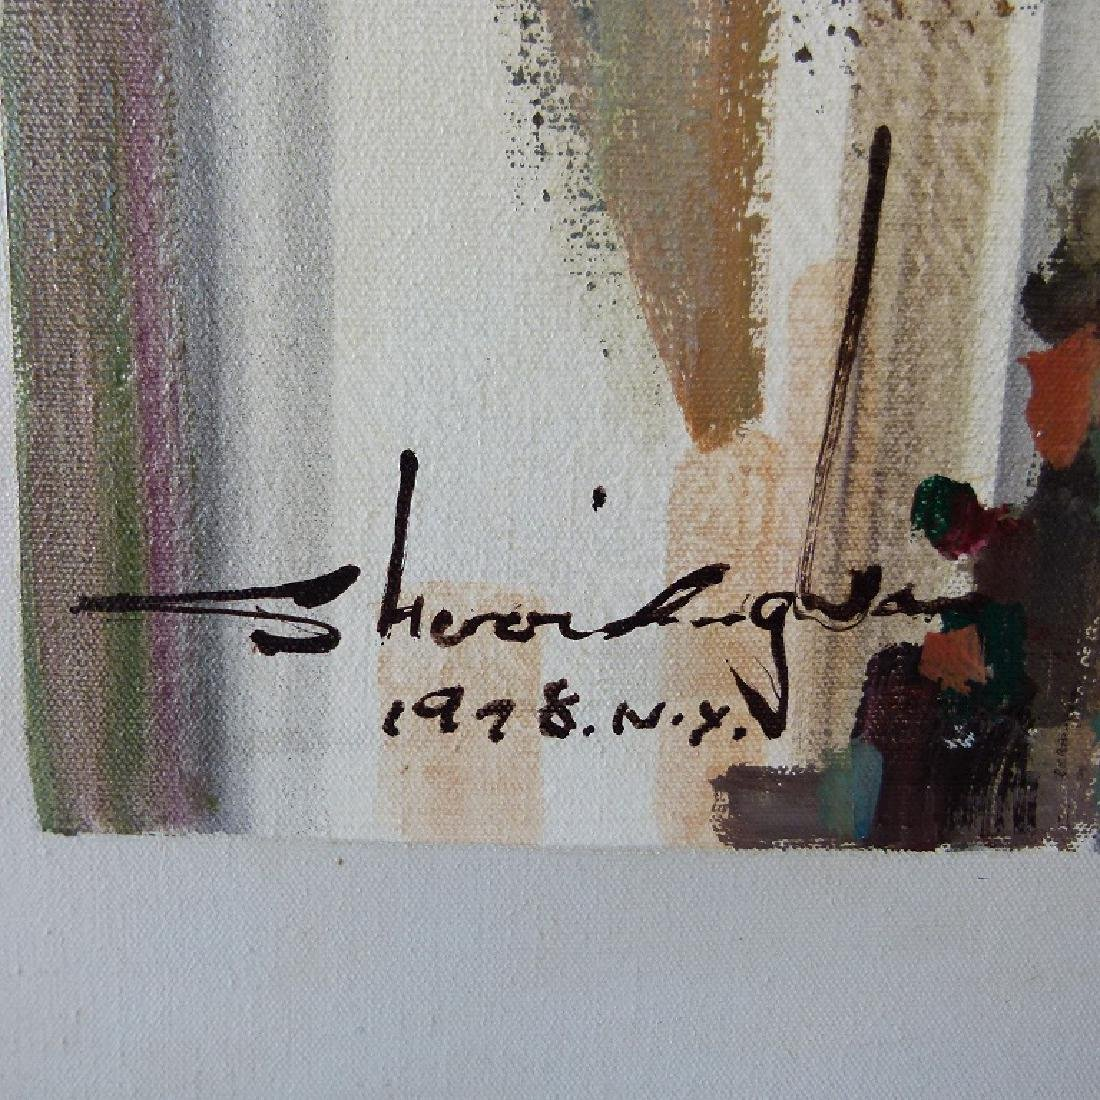 O/C ART MODERN ABSTRACT SIGNED ILLEDG., 1978 NY - 3